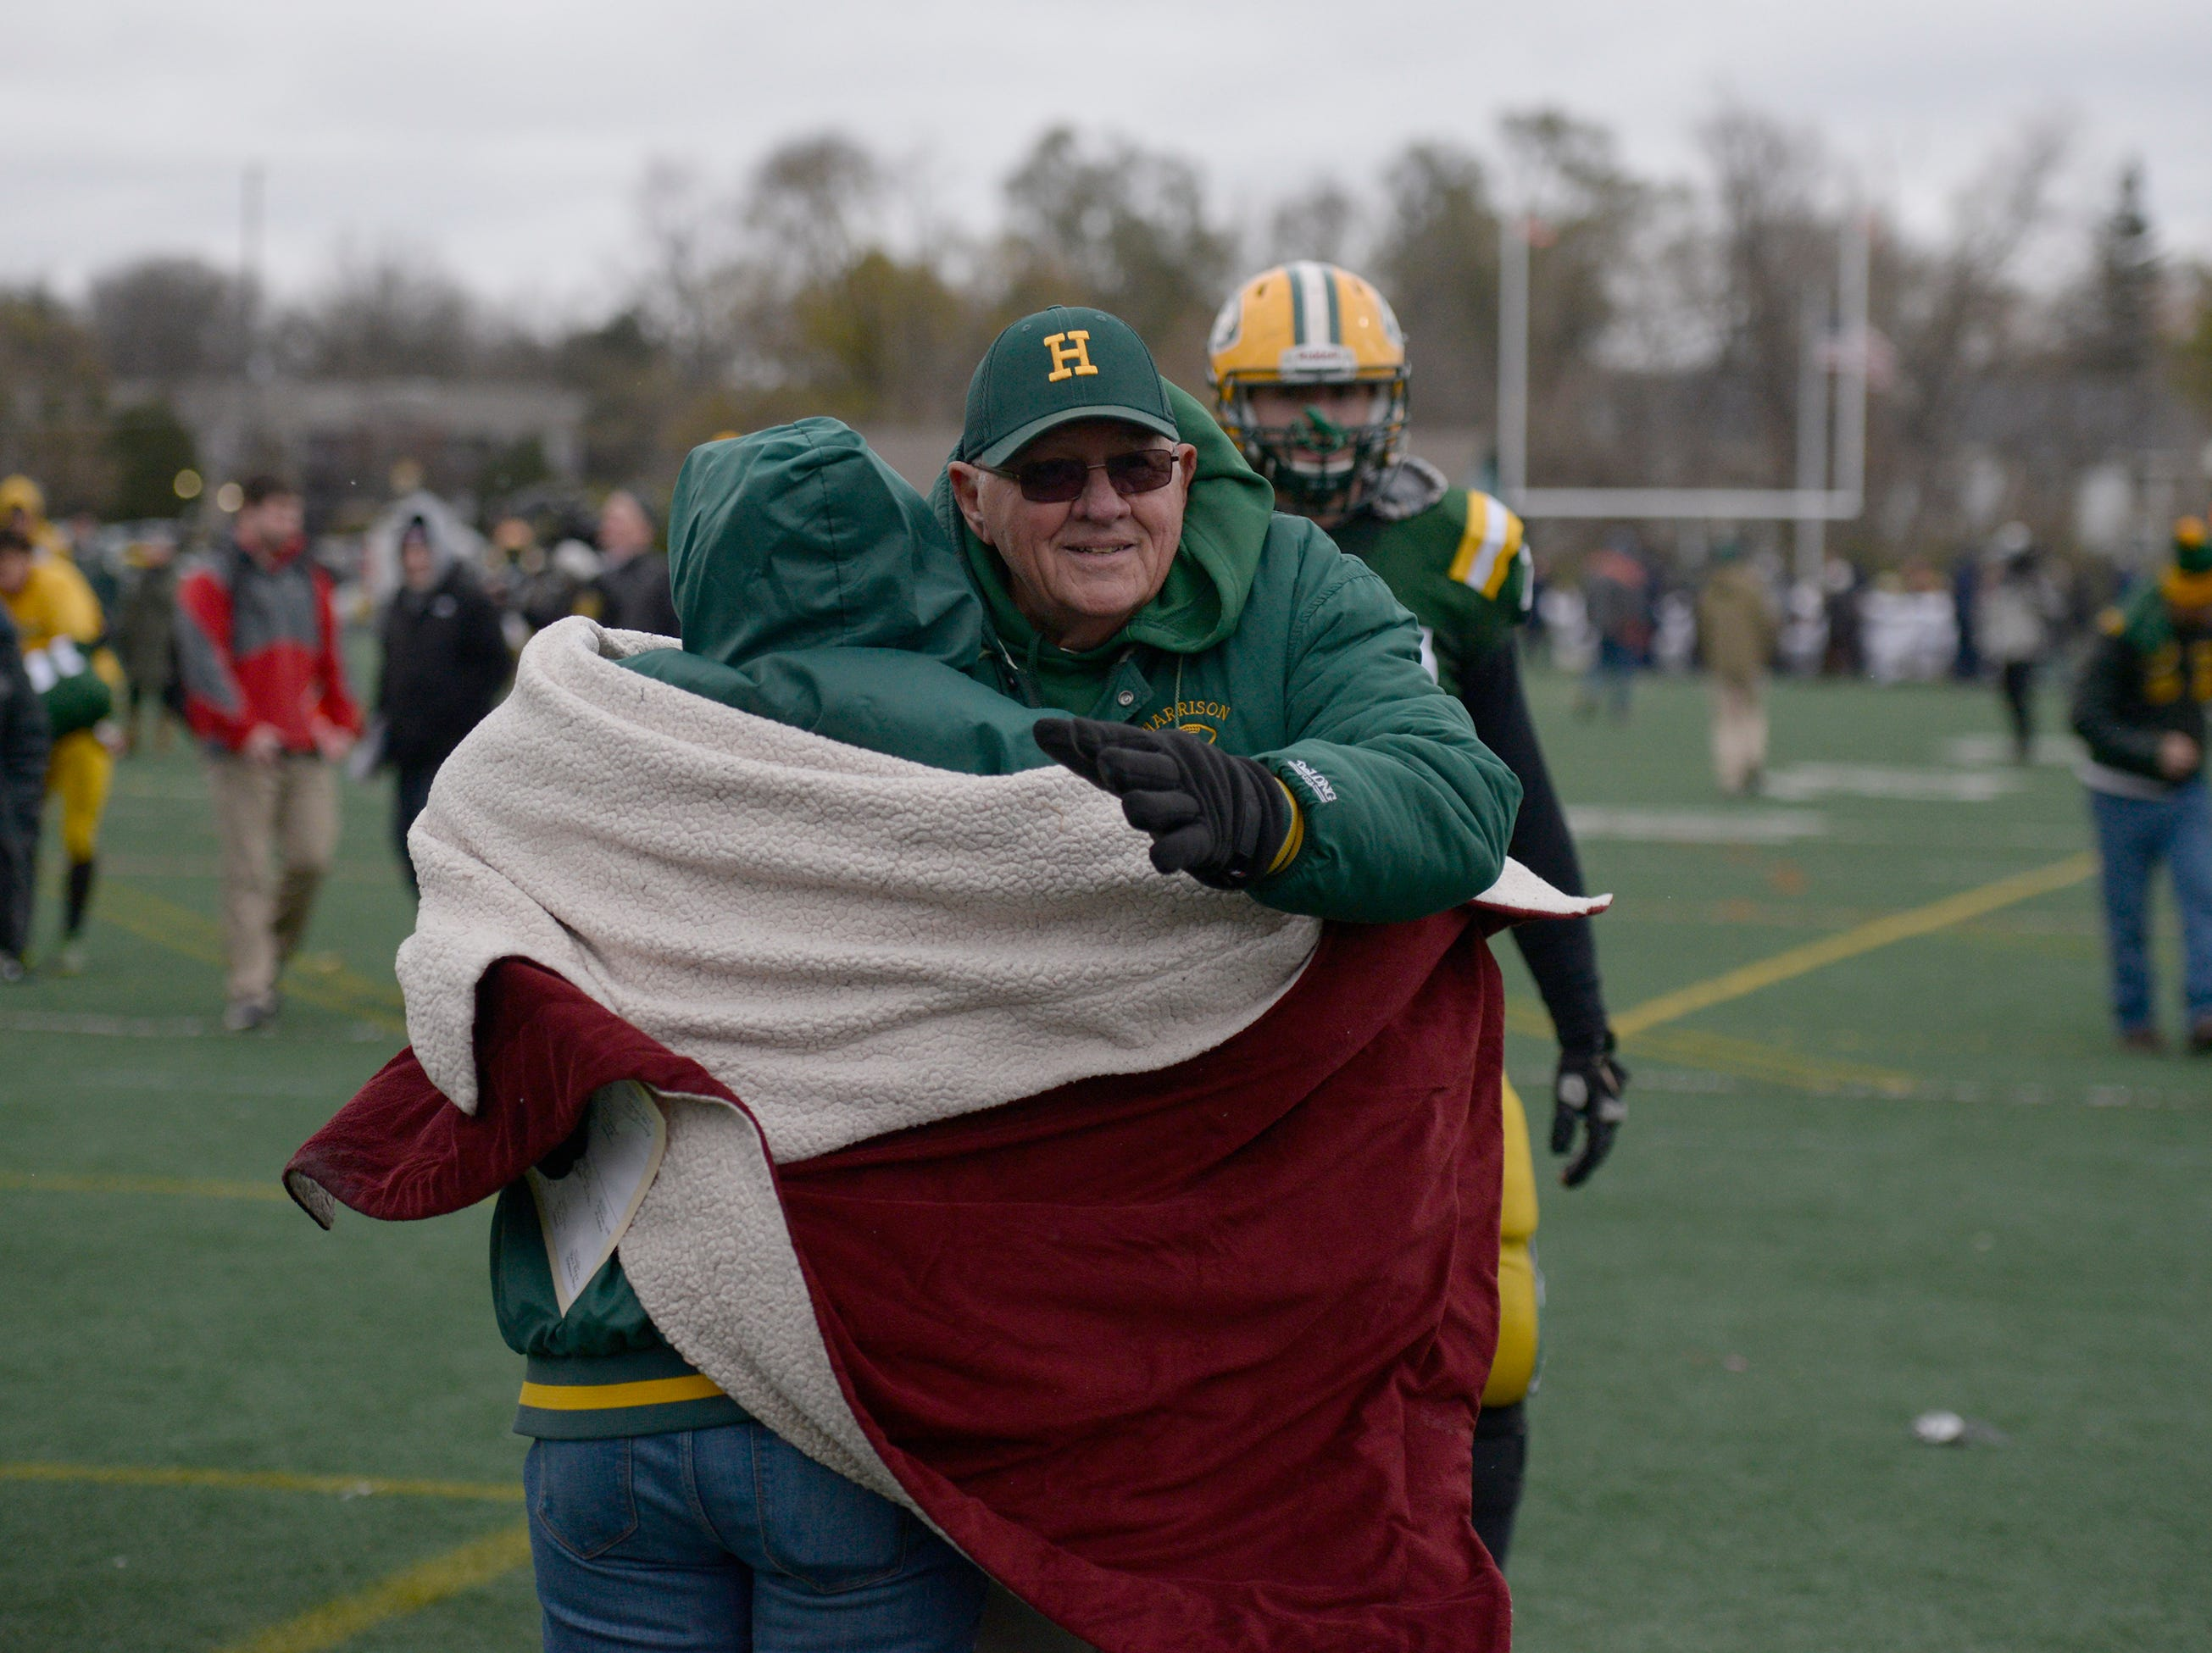 Farmington Harrison Head Coach John Herrington gets a hug after his team loss 21-14 in the Division 4 regional final played at Buller Field Nov. 10, 2018